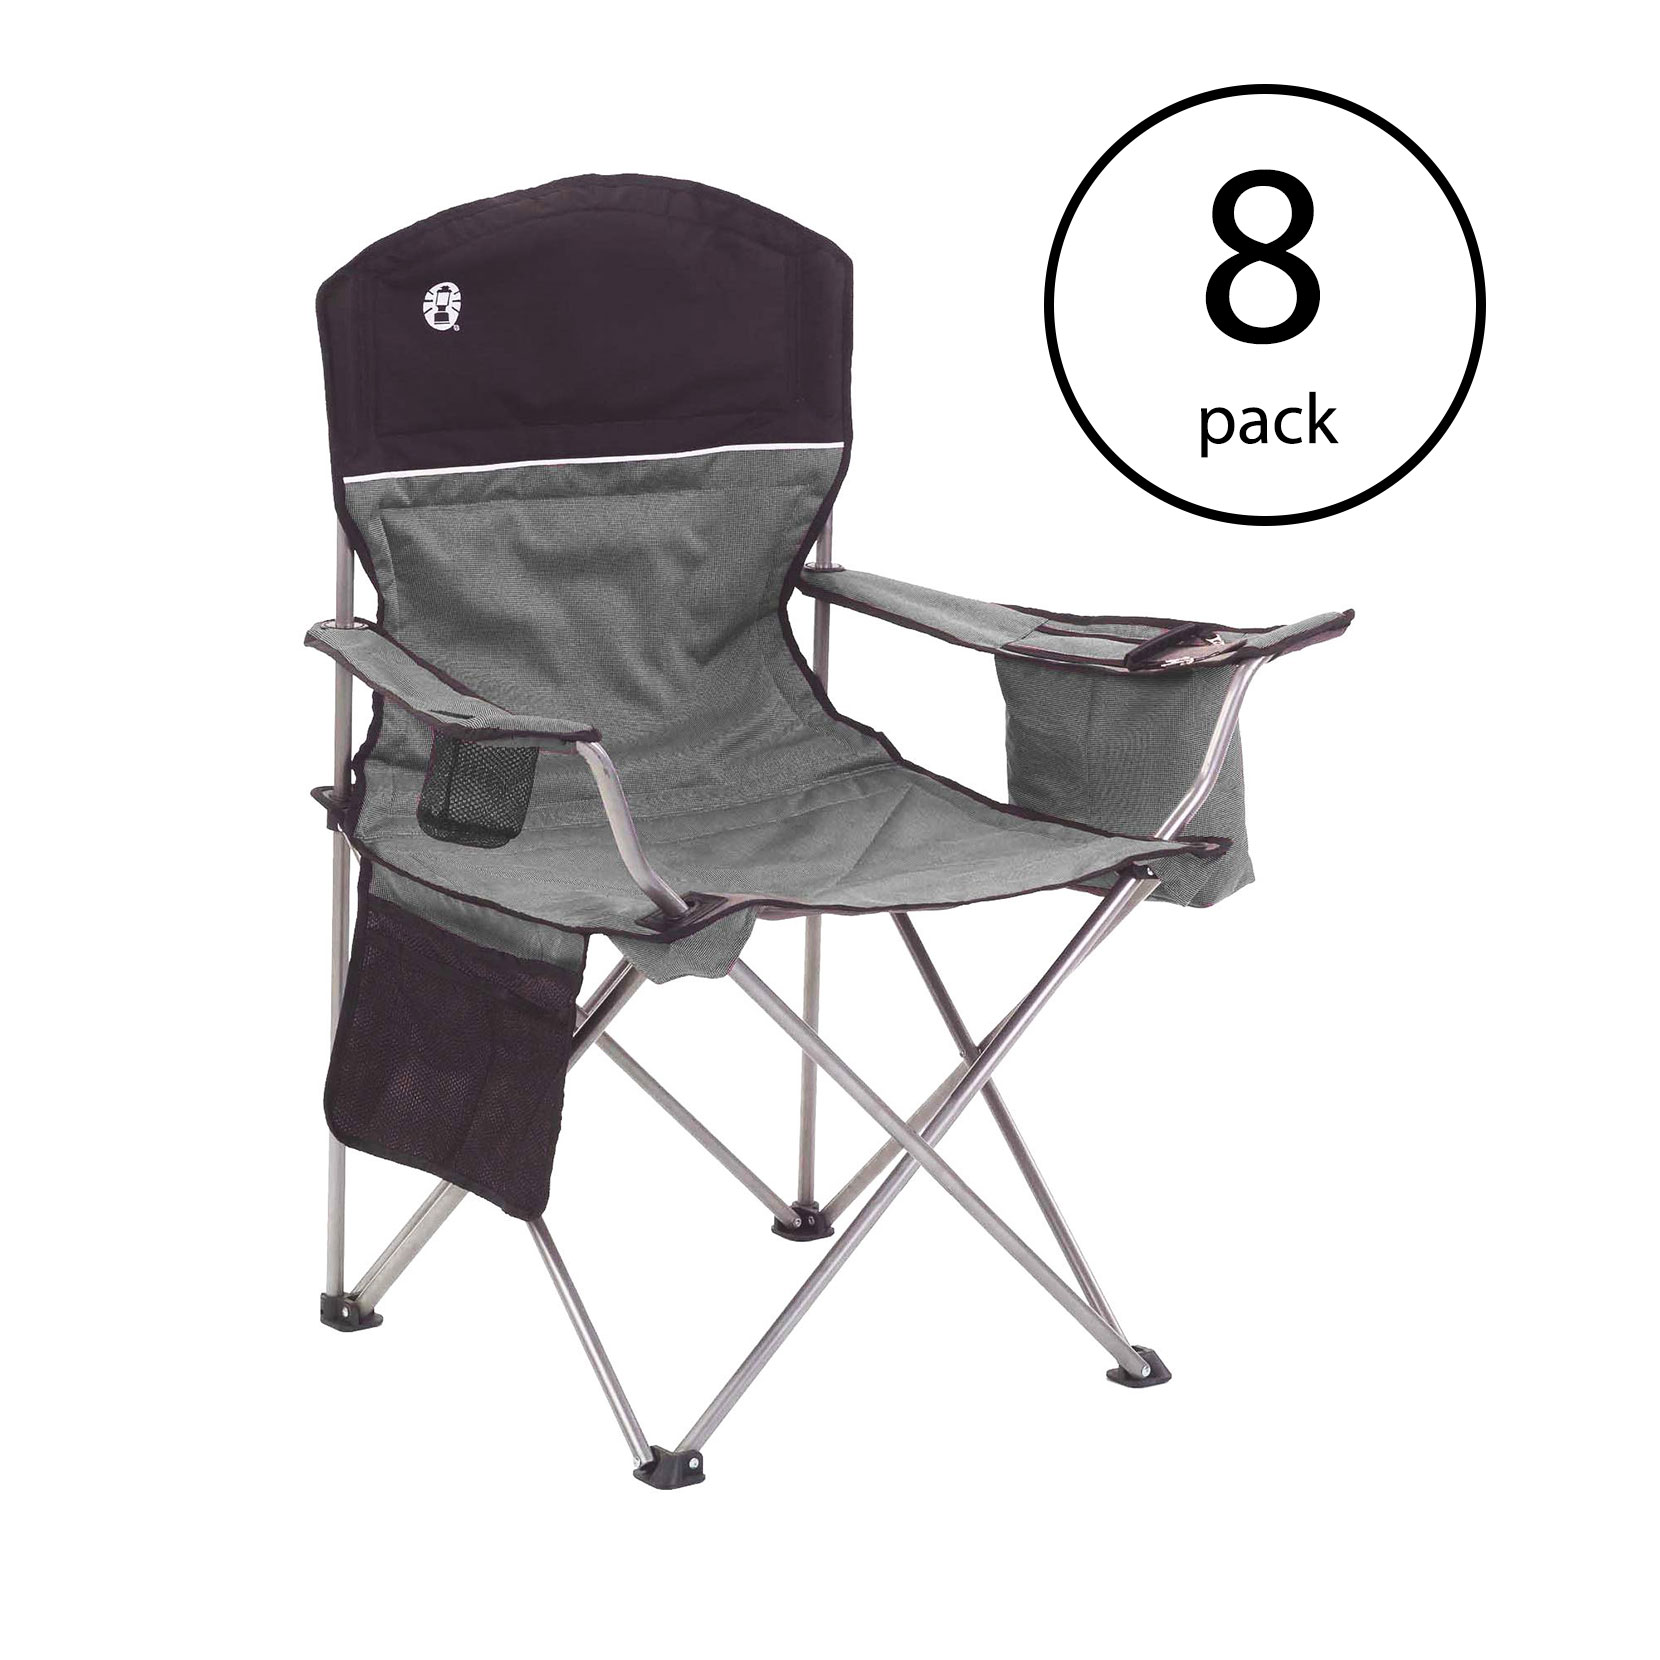 Coleman Oversized Quad Chair with Cooler and Cup Holder, Black/Gray (8 Pack)